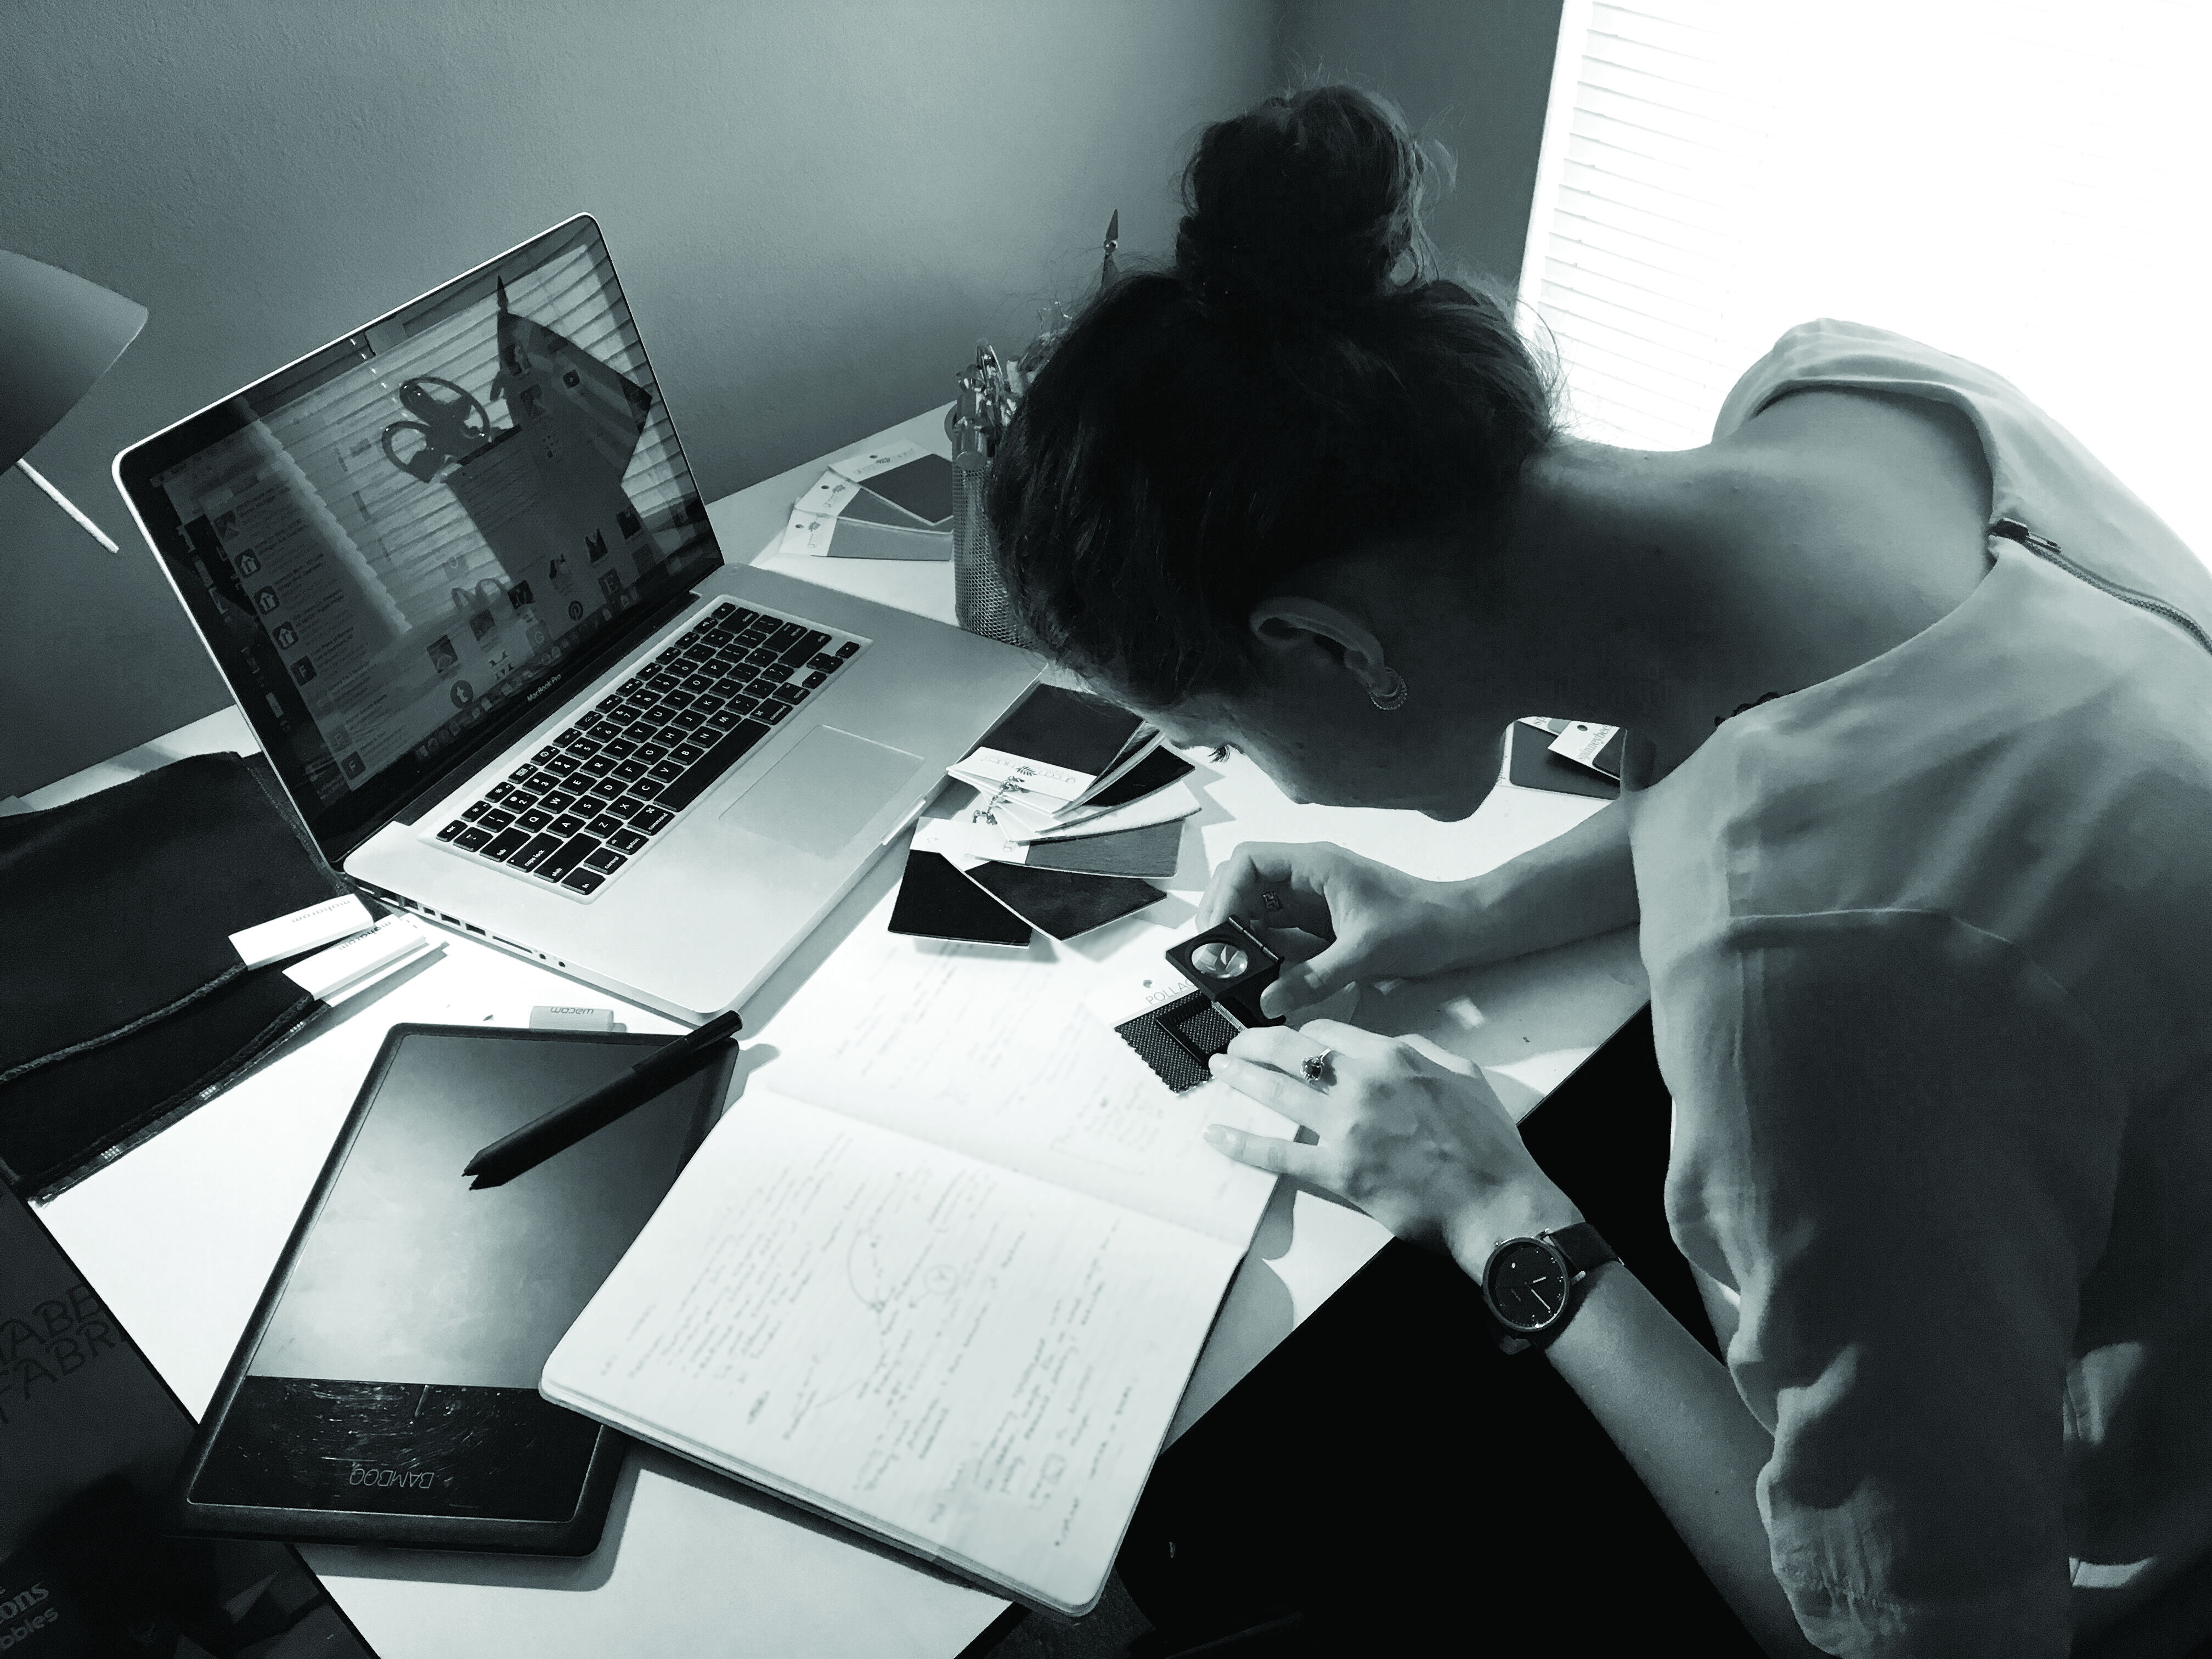 Woman hunched over a desk sketching